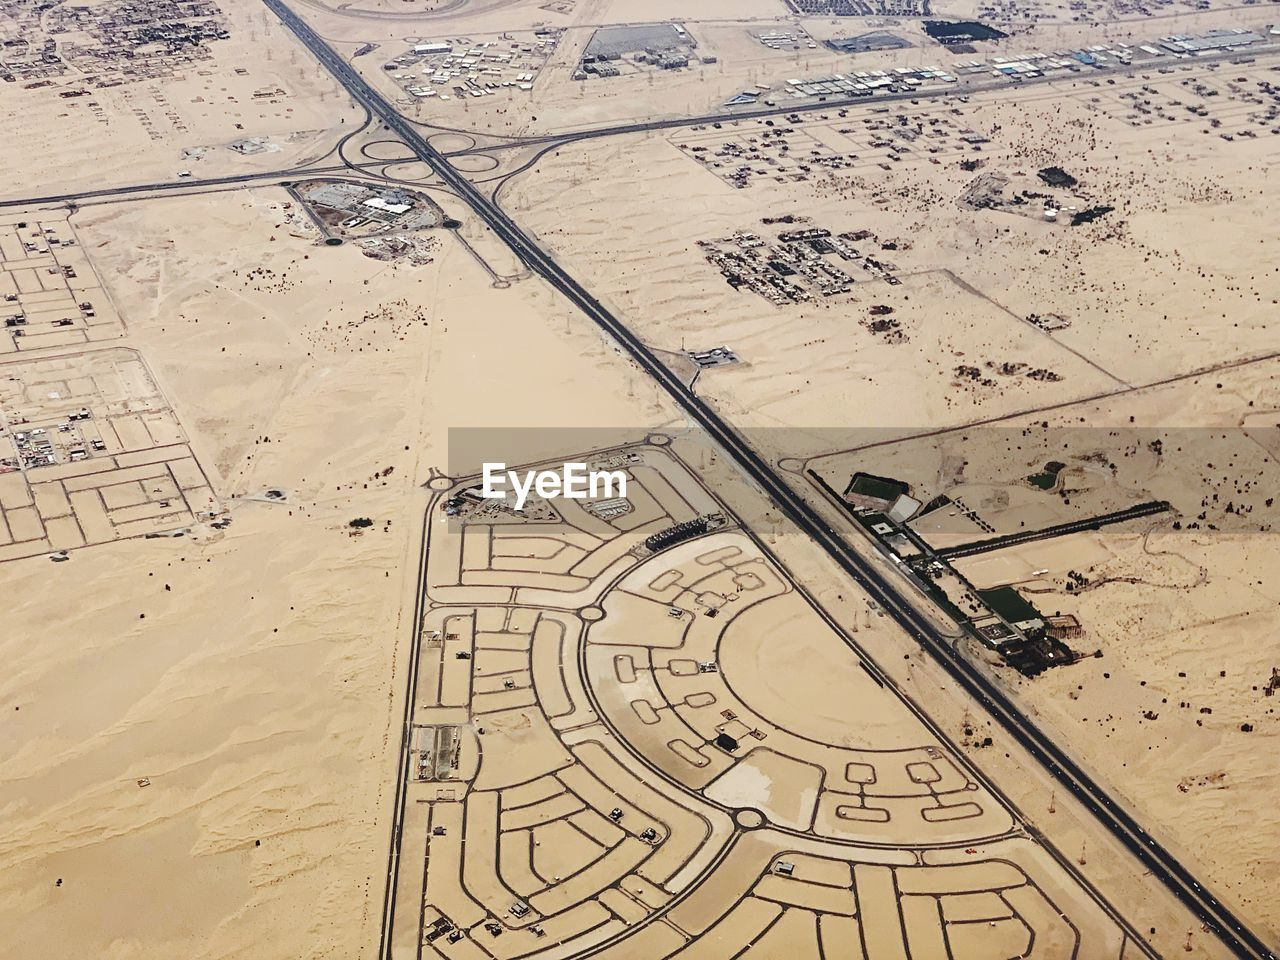 land, high angle view, environment, aerial view, no people, industry, day, landscape, nature, sand, architecture, outdoors, pattern, scenics - nature, tire track, beauty in nature, field, built structure, agriculture, desert, arid climate